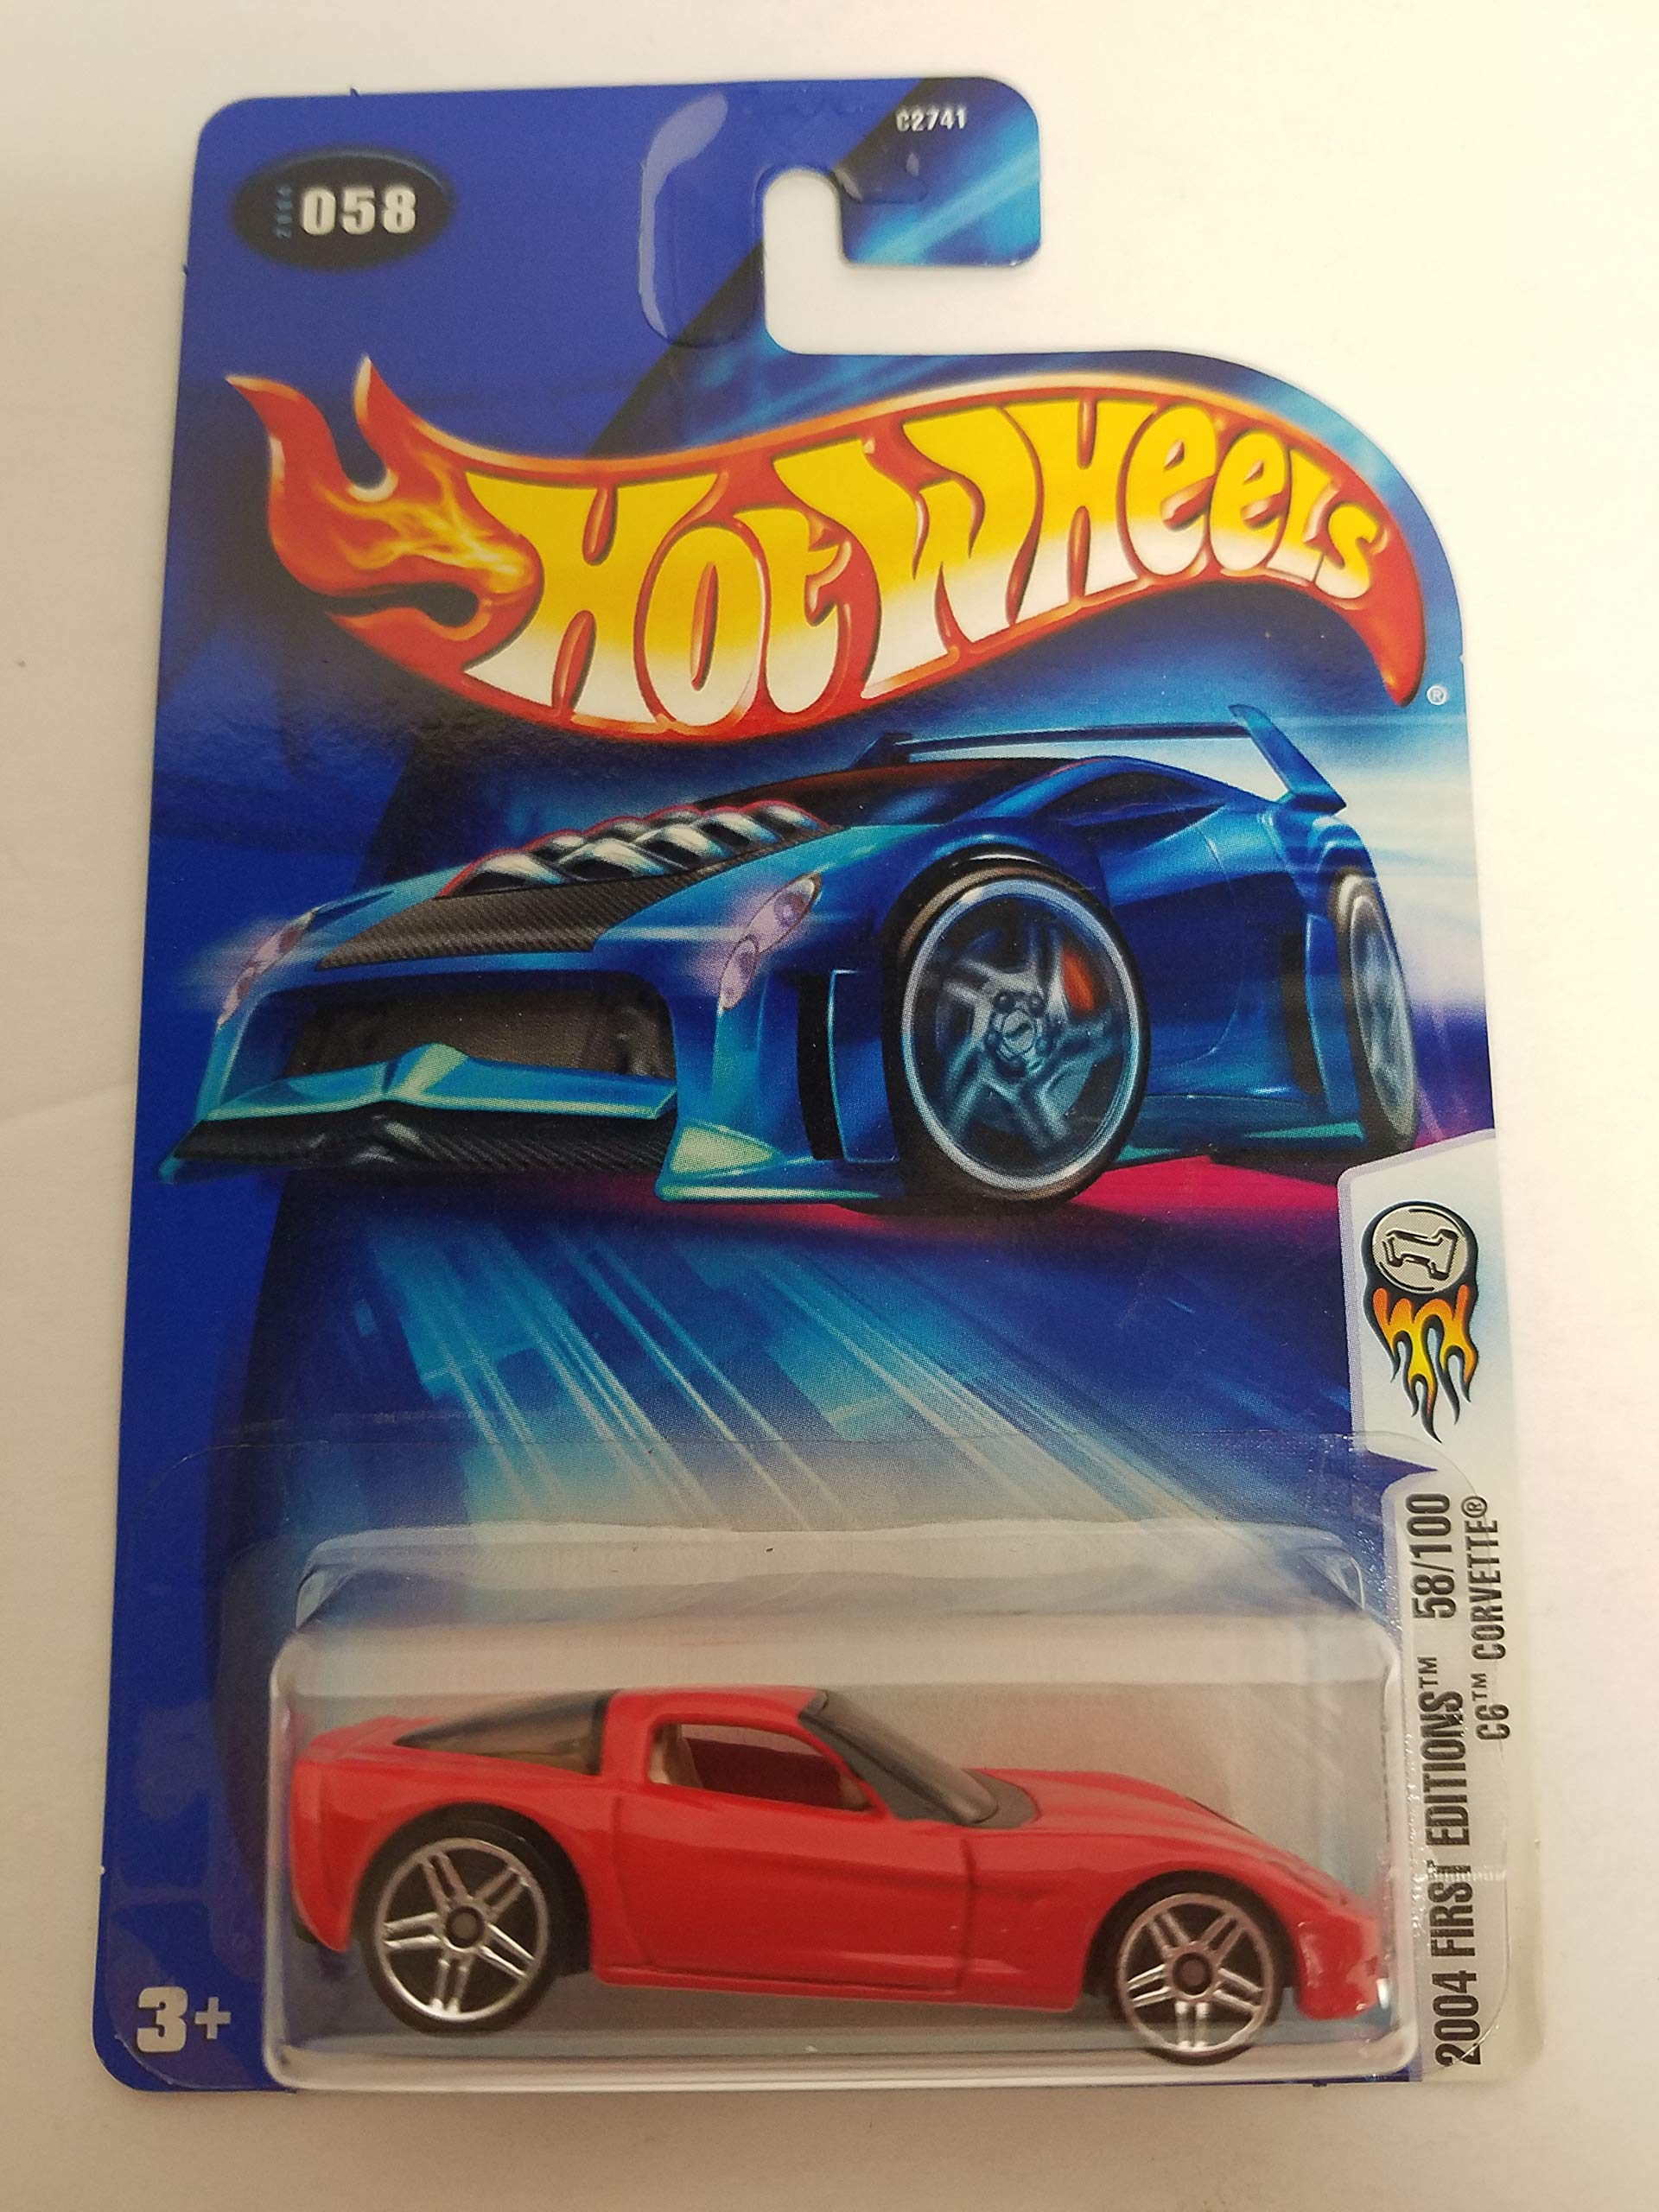 C6 Corvette 2004 First Editions 58/100 Hot Wheels Diecast Car No. 058